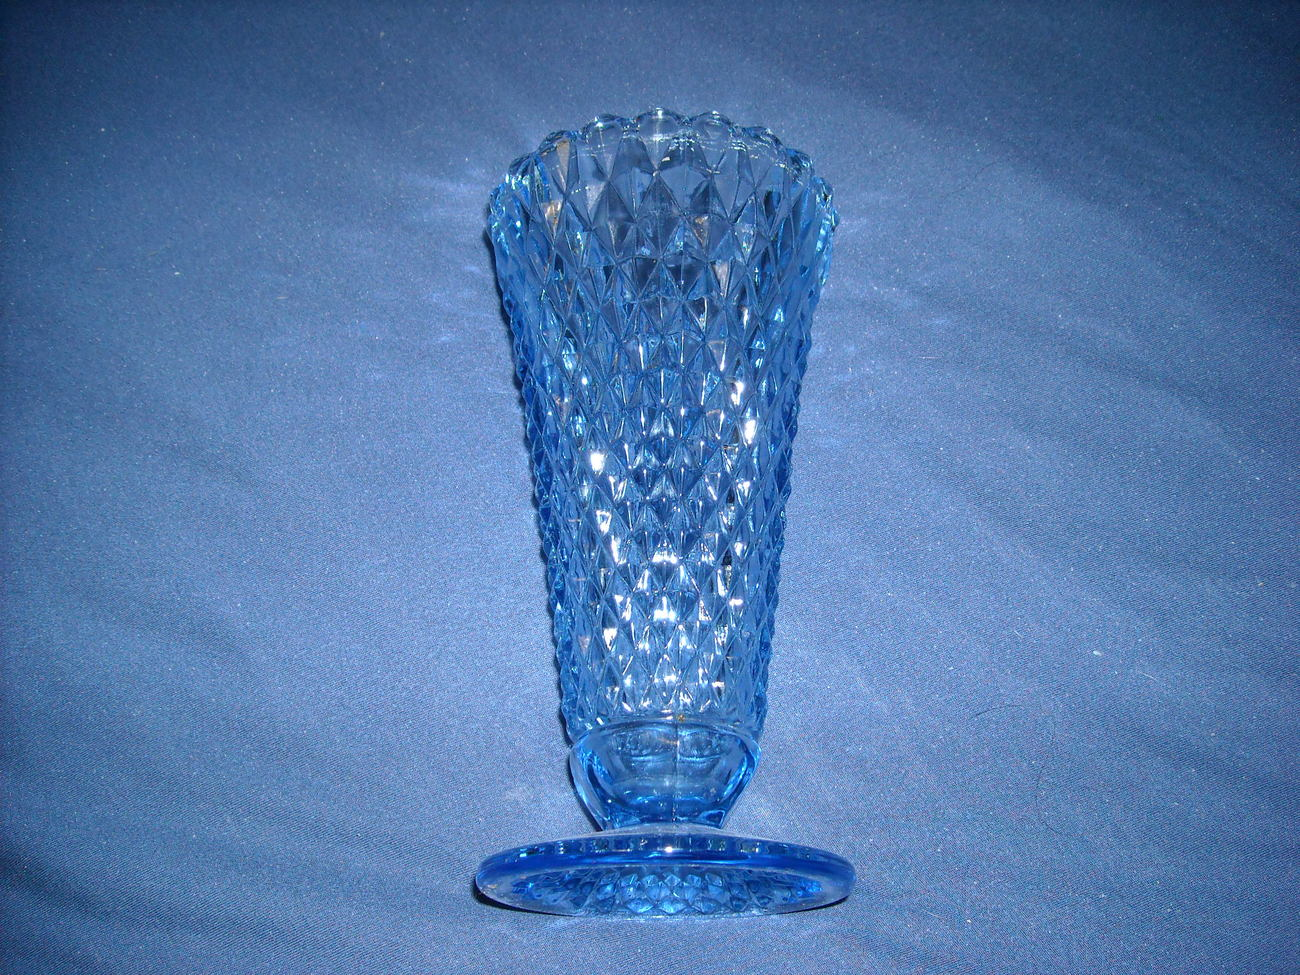 Jblue depression fenton vase 1 vase 2   2